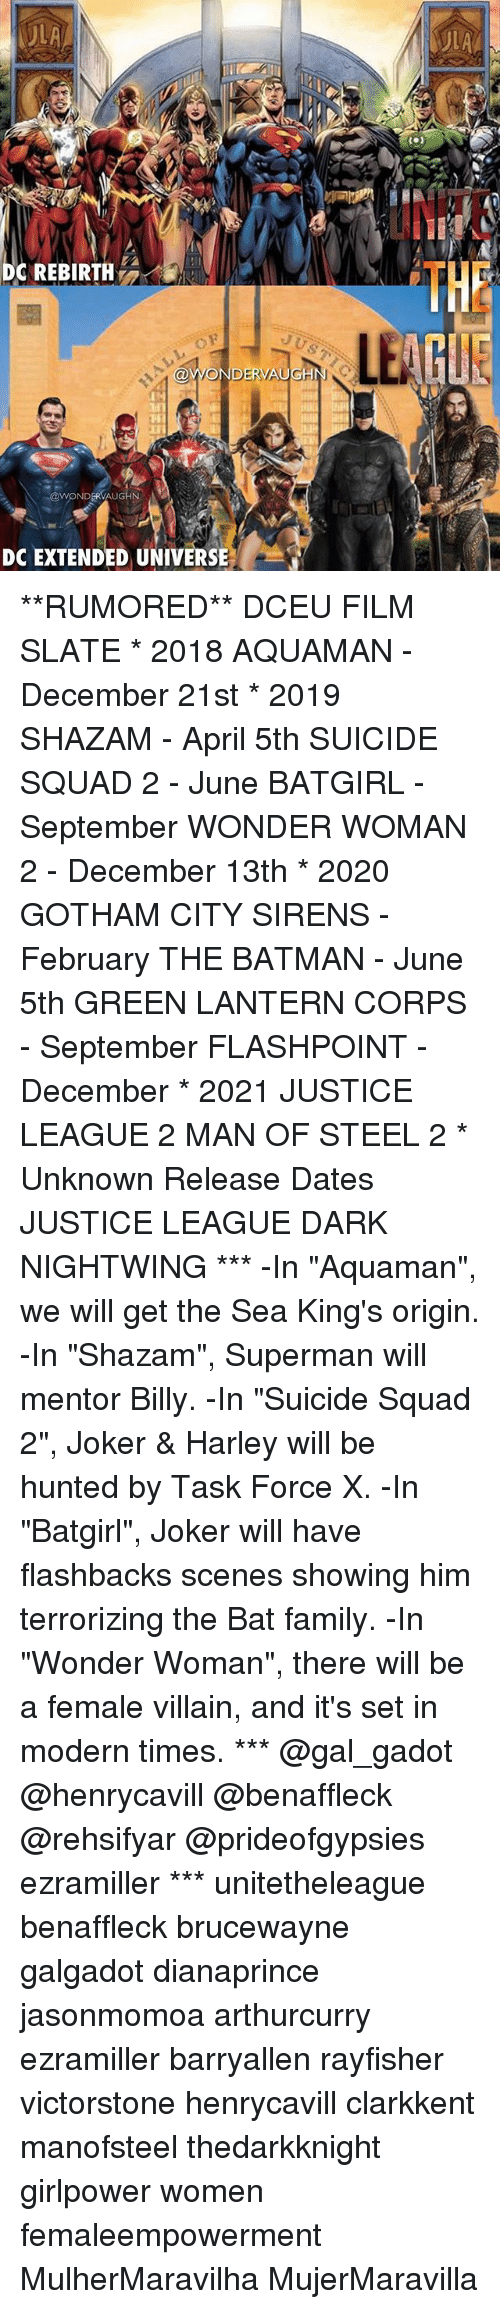 "task force: DC REBIRTH  LE  OWONDERVAUGH  ND  DC EXTENDED UNIVERSE **RUMORED** DCEU FILM SLATE * 2018 AQUAMAN - December 21st * 2019 SHAZAM - April 5th SUICIDE SQUAD 2 - June BATGIRL - September WONDER WOMAN 2 - December 13th * 2020 GOTHAM CITY SIRENS - February THE BATMAN - June 5th GREEN LANTERN CORPS - September FLASHPOINT - December * 2021 JUSTICE LEAGUE 2 MAN OF STEEL 2 * Unknown Release Dates JUSTICE LEAGUE DARK NIGHTWING *** -In ""Aquaman"", we will get the Sea King's origin. -In ""Shazam"", Superman will mentor Billy. -In ""Suicide Squad 2"", Joker & Harley will be hunted by Task Force X. -In ""Batgirl"", Joker will have flashbacks scenes showing him terrorizing the Bat family. -In ""Wonder Woman"", there will be a female villain, and it's set in modern times. *** @gal_gadot @henrycavill @benaffleck @rehsifyar @prideofgypsies ezramiller *** unitetheleague benaffleck brucewayne galgadot dianaprince jasonmomoa arthurcurry ezramiller barryallen rayfisher victorstone henrycavill clarkkent manofsteel thedarkknight girlpower women femaleempowerment MulherMaravilha MujerMaravilla"